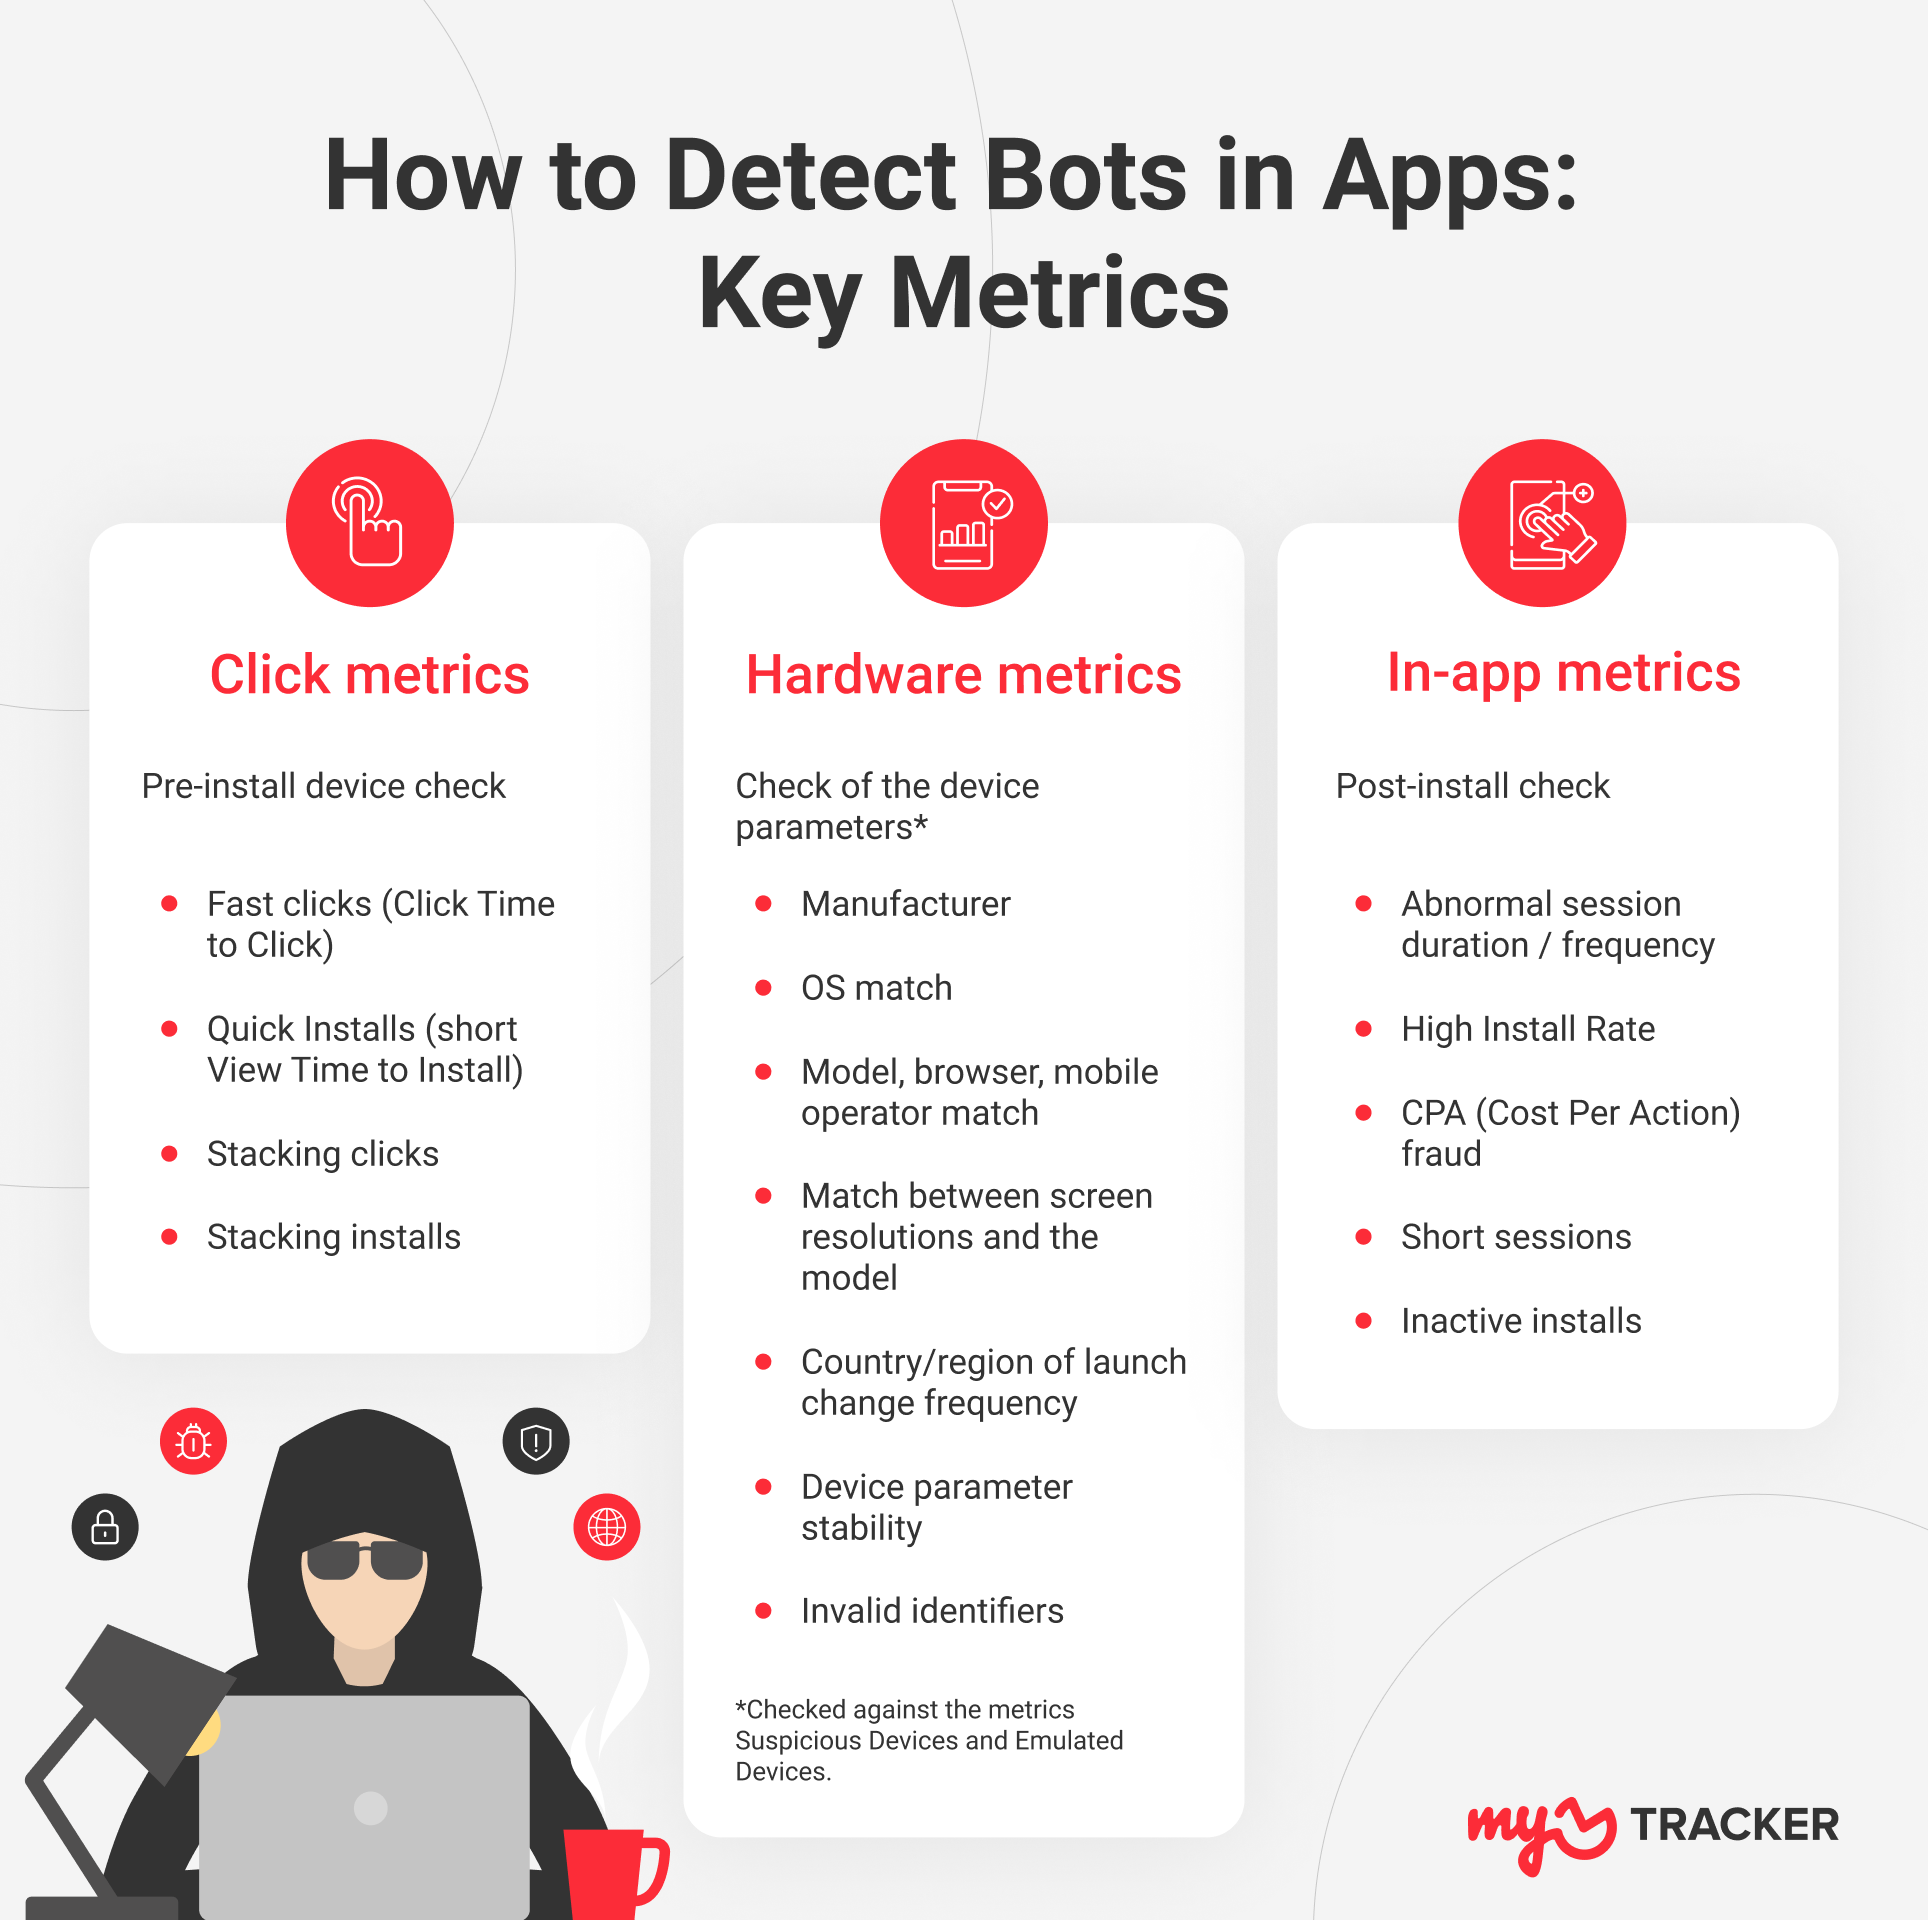 metrics to detect bots in apps